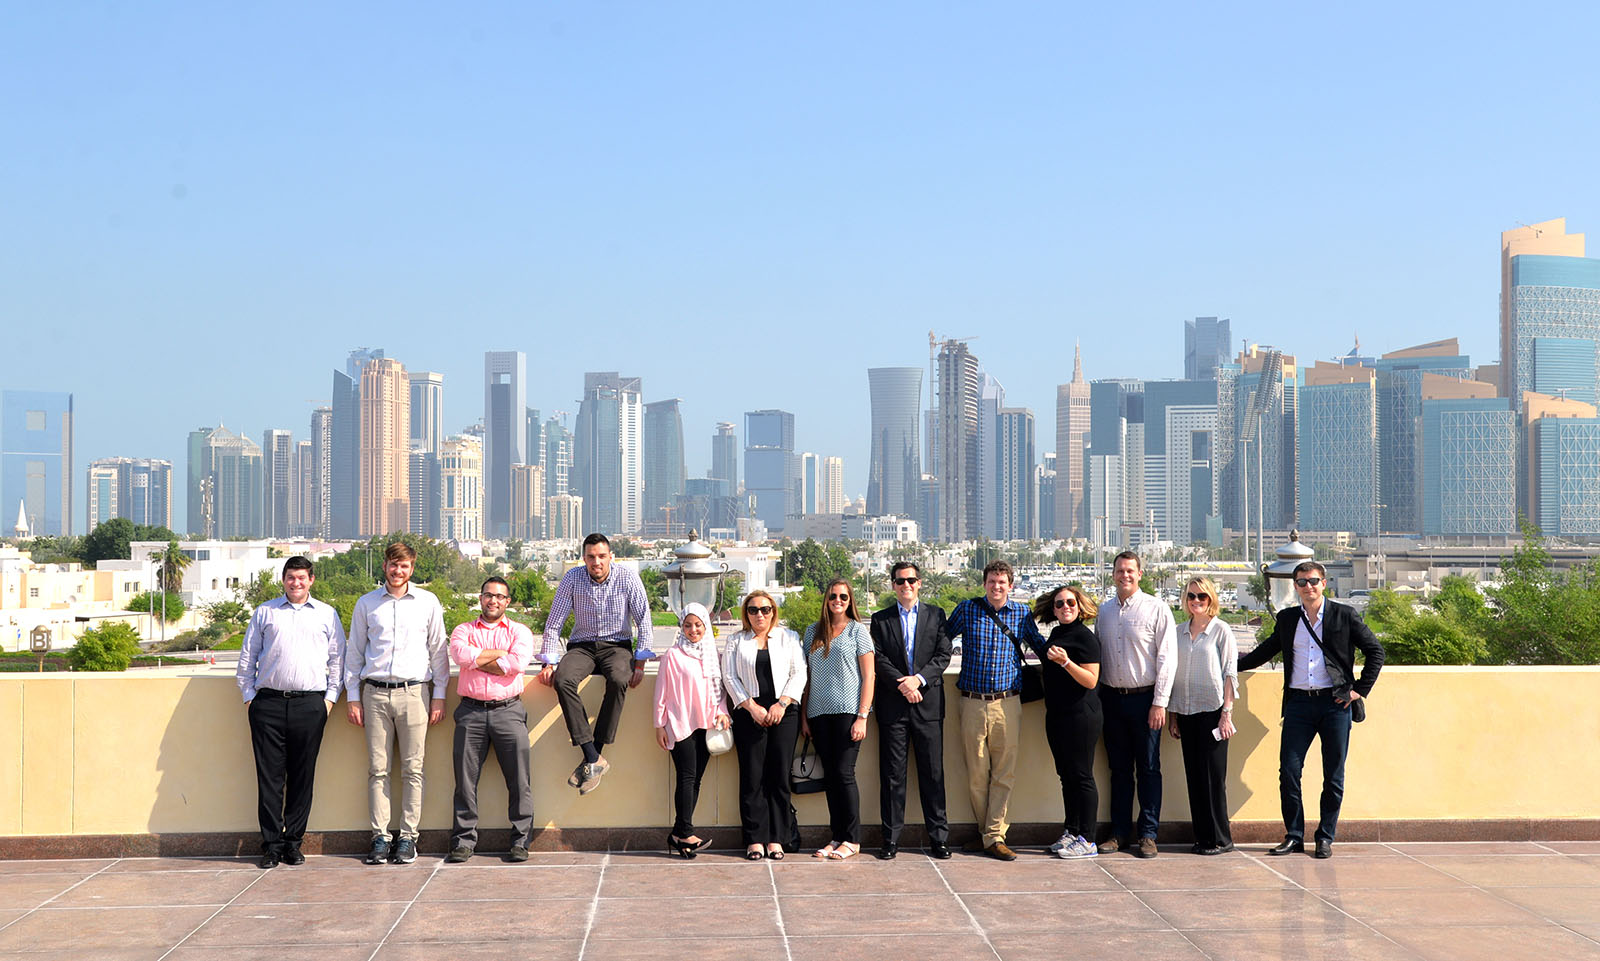 Students pose in front of the Doha skyline.